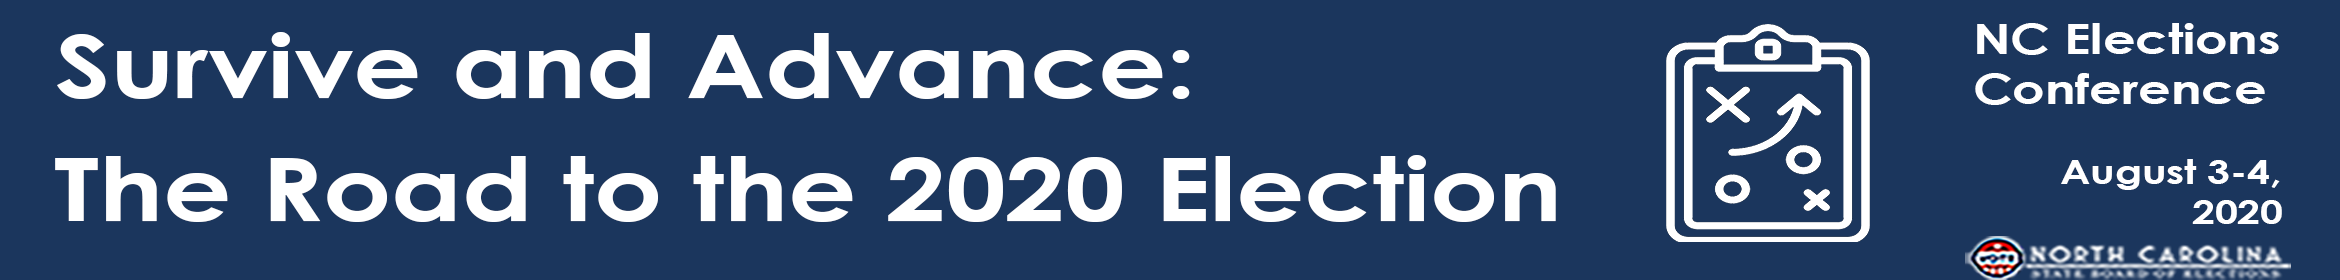 NC Board of Elections 2020 State Conference  Main banner